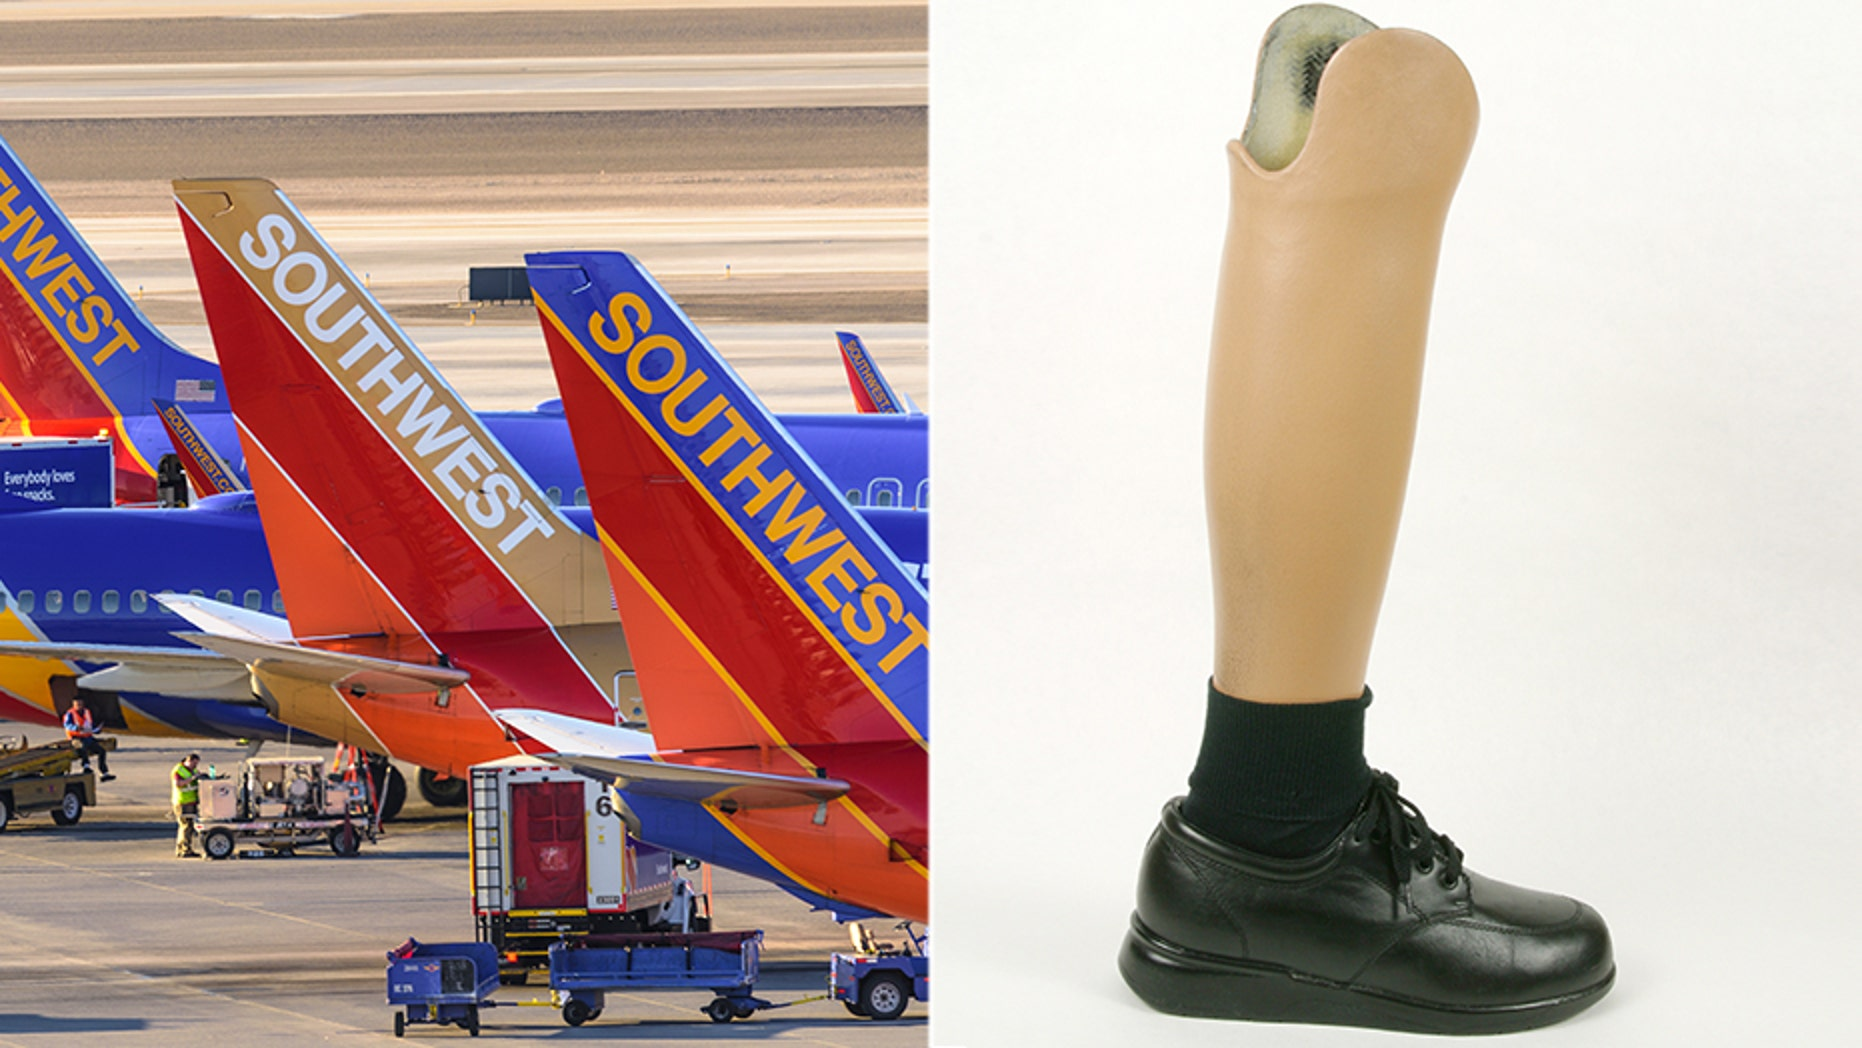 A Florida woman is claiming Southwest Airlines lost her checked bag, which contained her mother's new prosthetic foot (not pictured).